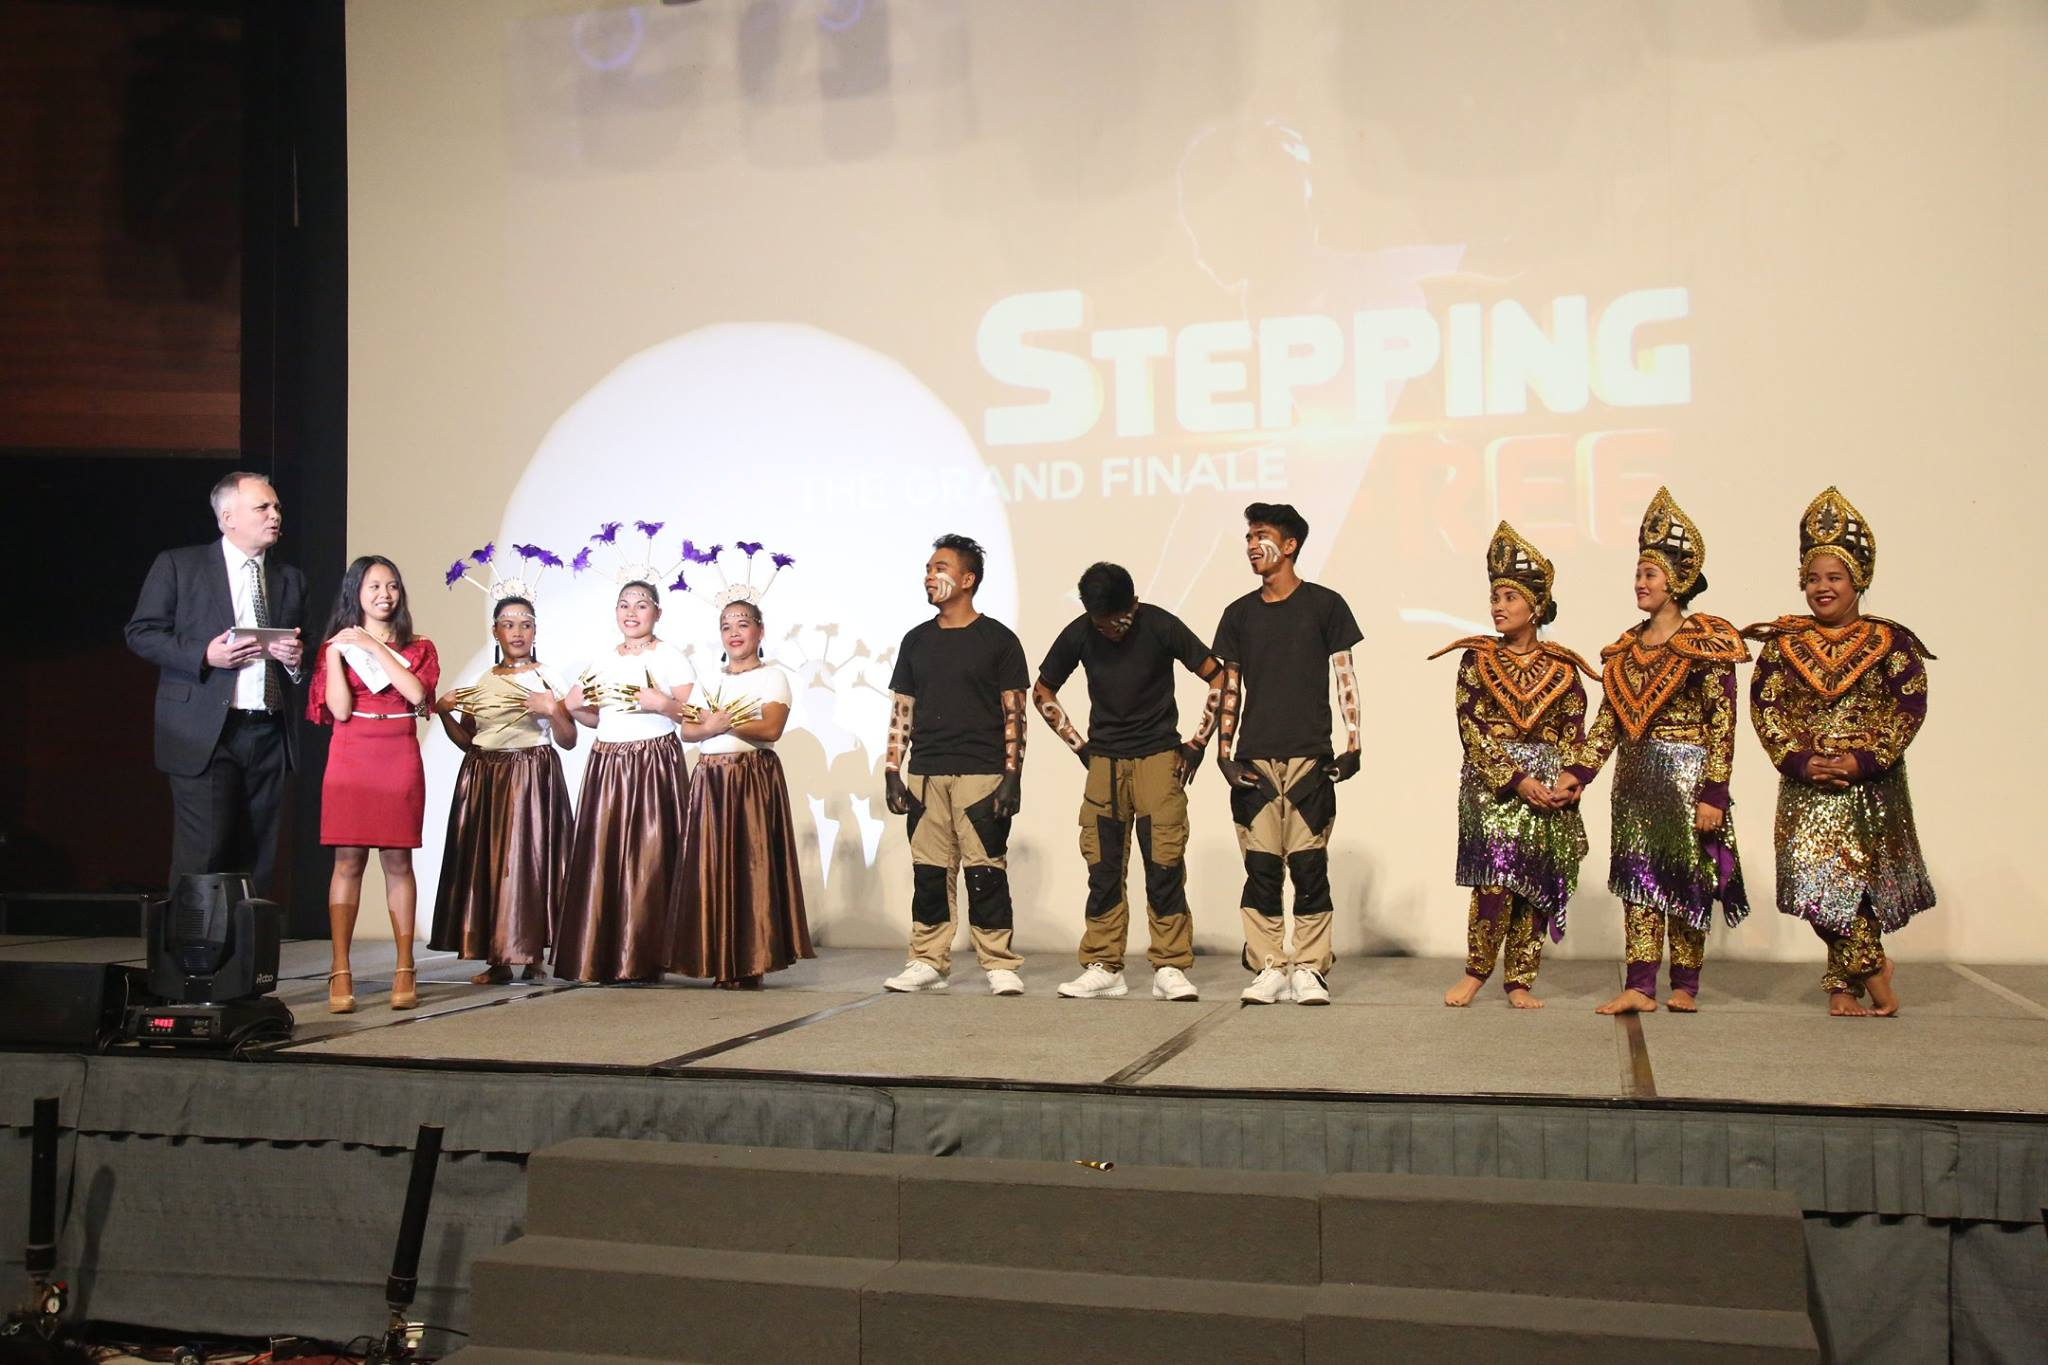 FINALISTS. Sutherland with the 3 groups that competed in the finals of 'Stepping Free' dance competition held in the 23 provinces served by ICM. Photo courtesy of Daisy C.L Mandap